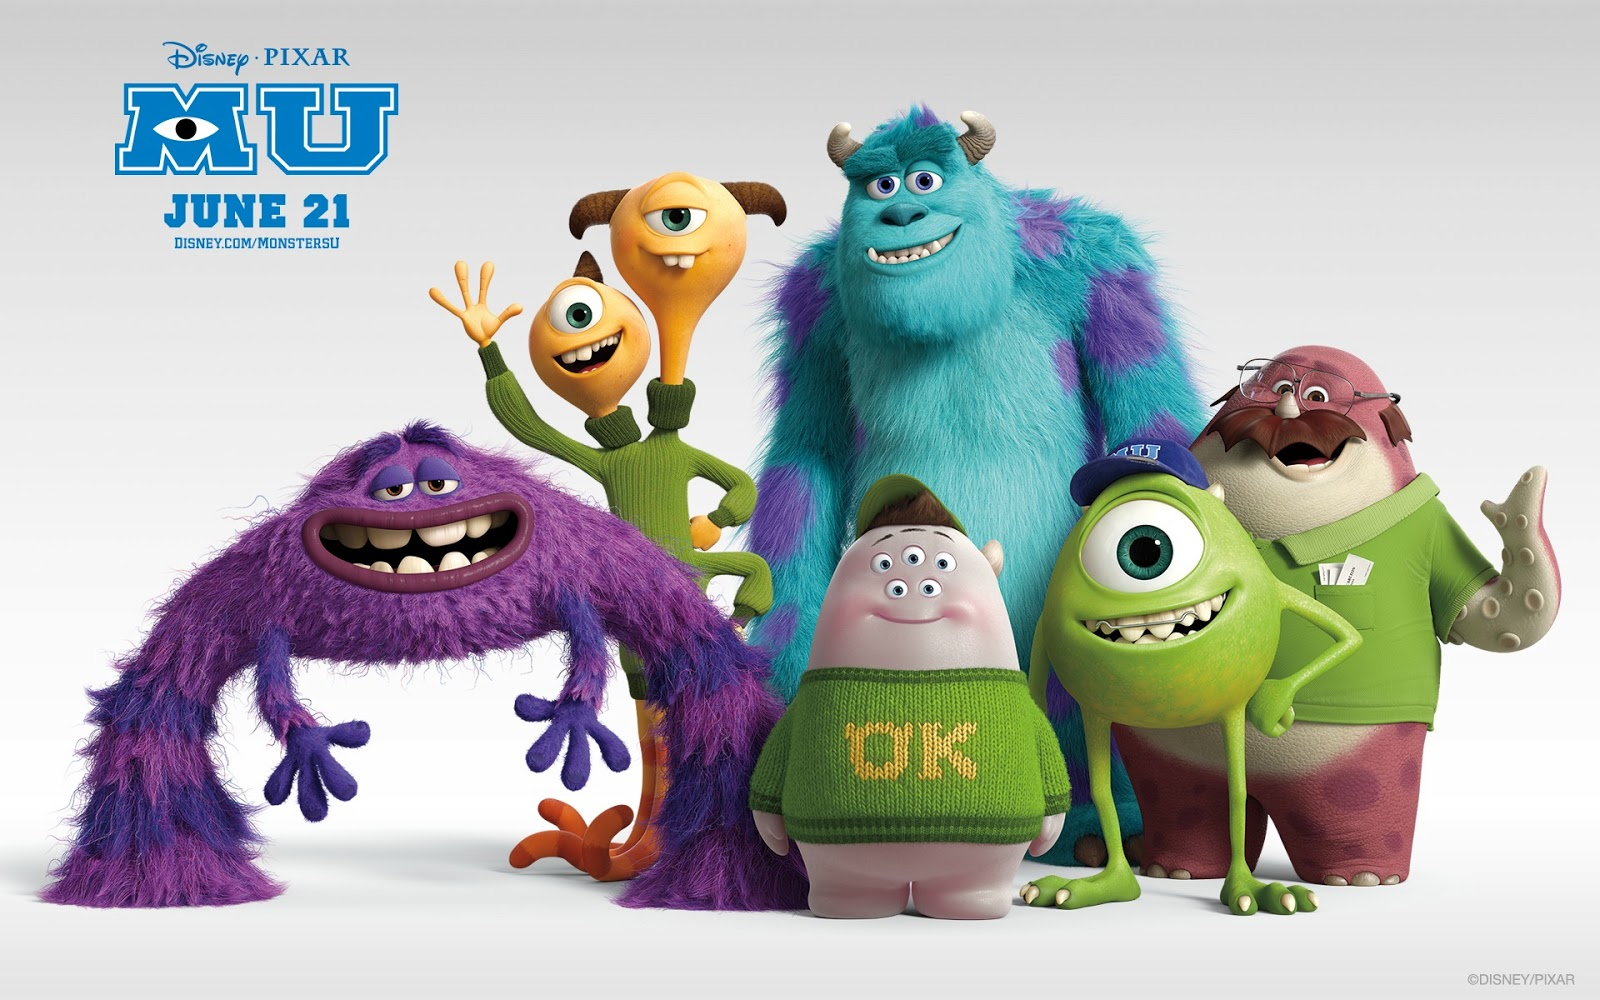 http://3.bp.blogspot.com/-H5_G1n4LO8U/UYd7yMb5-9I/AAAAAAAAZh8/vRpDdjLLJME/s1600/monsters-university-movie.jpg